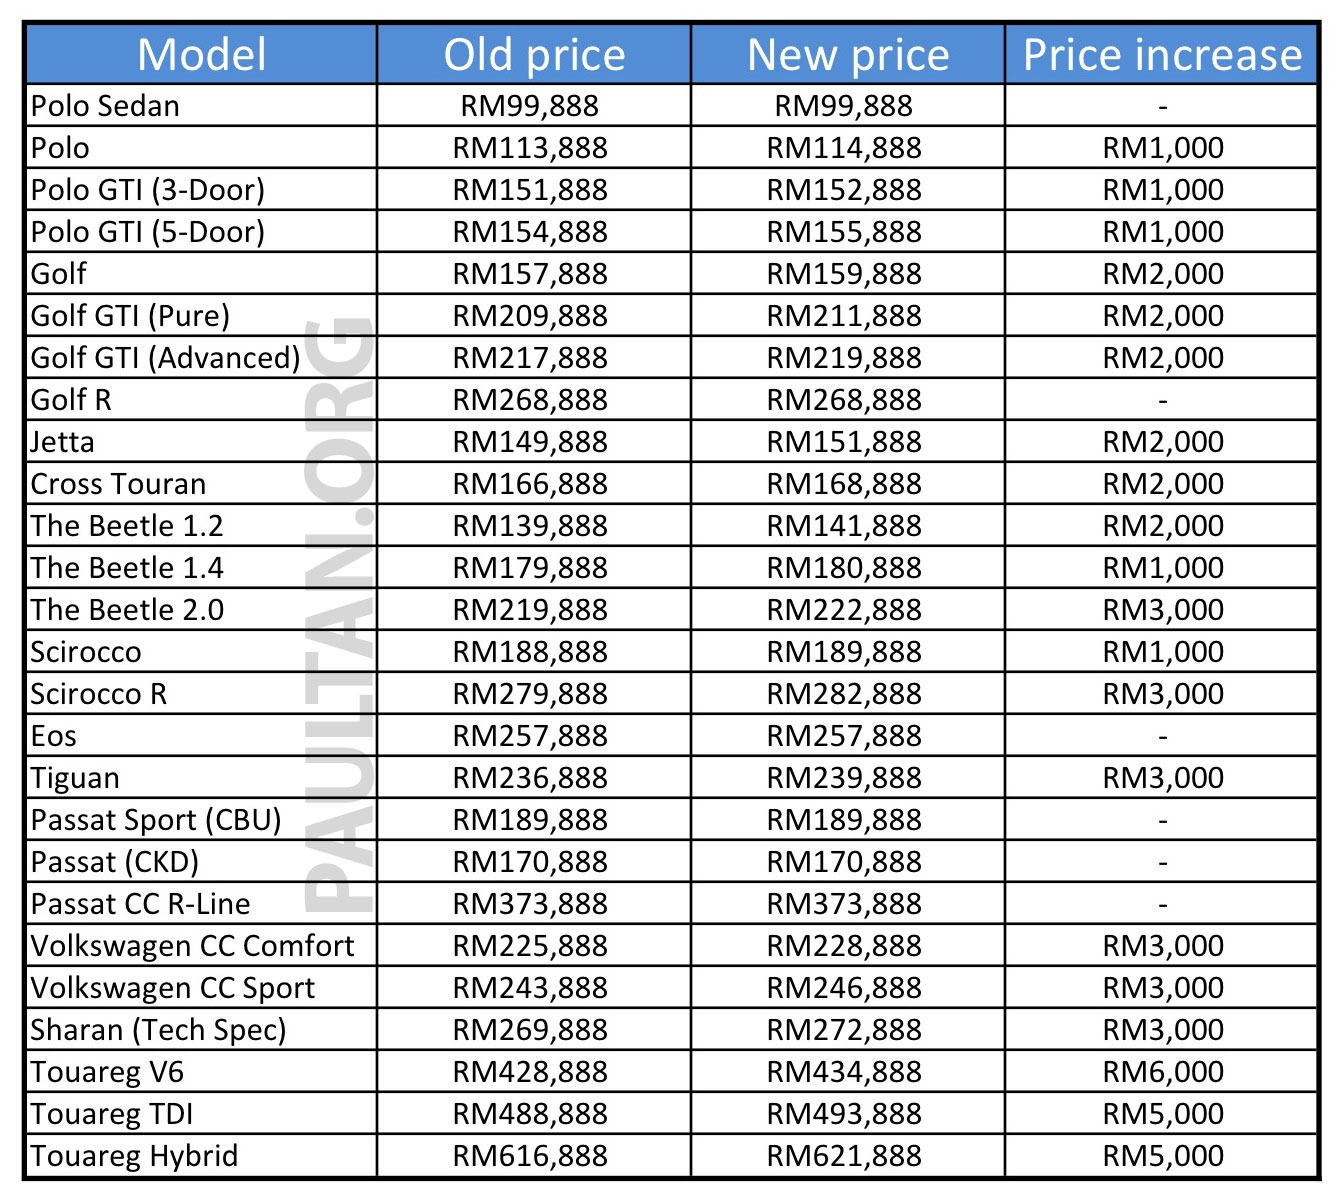 Volkswagen Malaysia issues range-wide price increase Image 205193